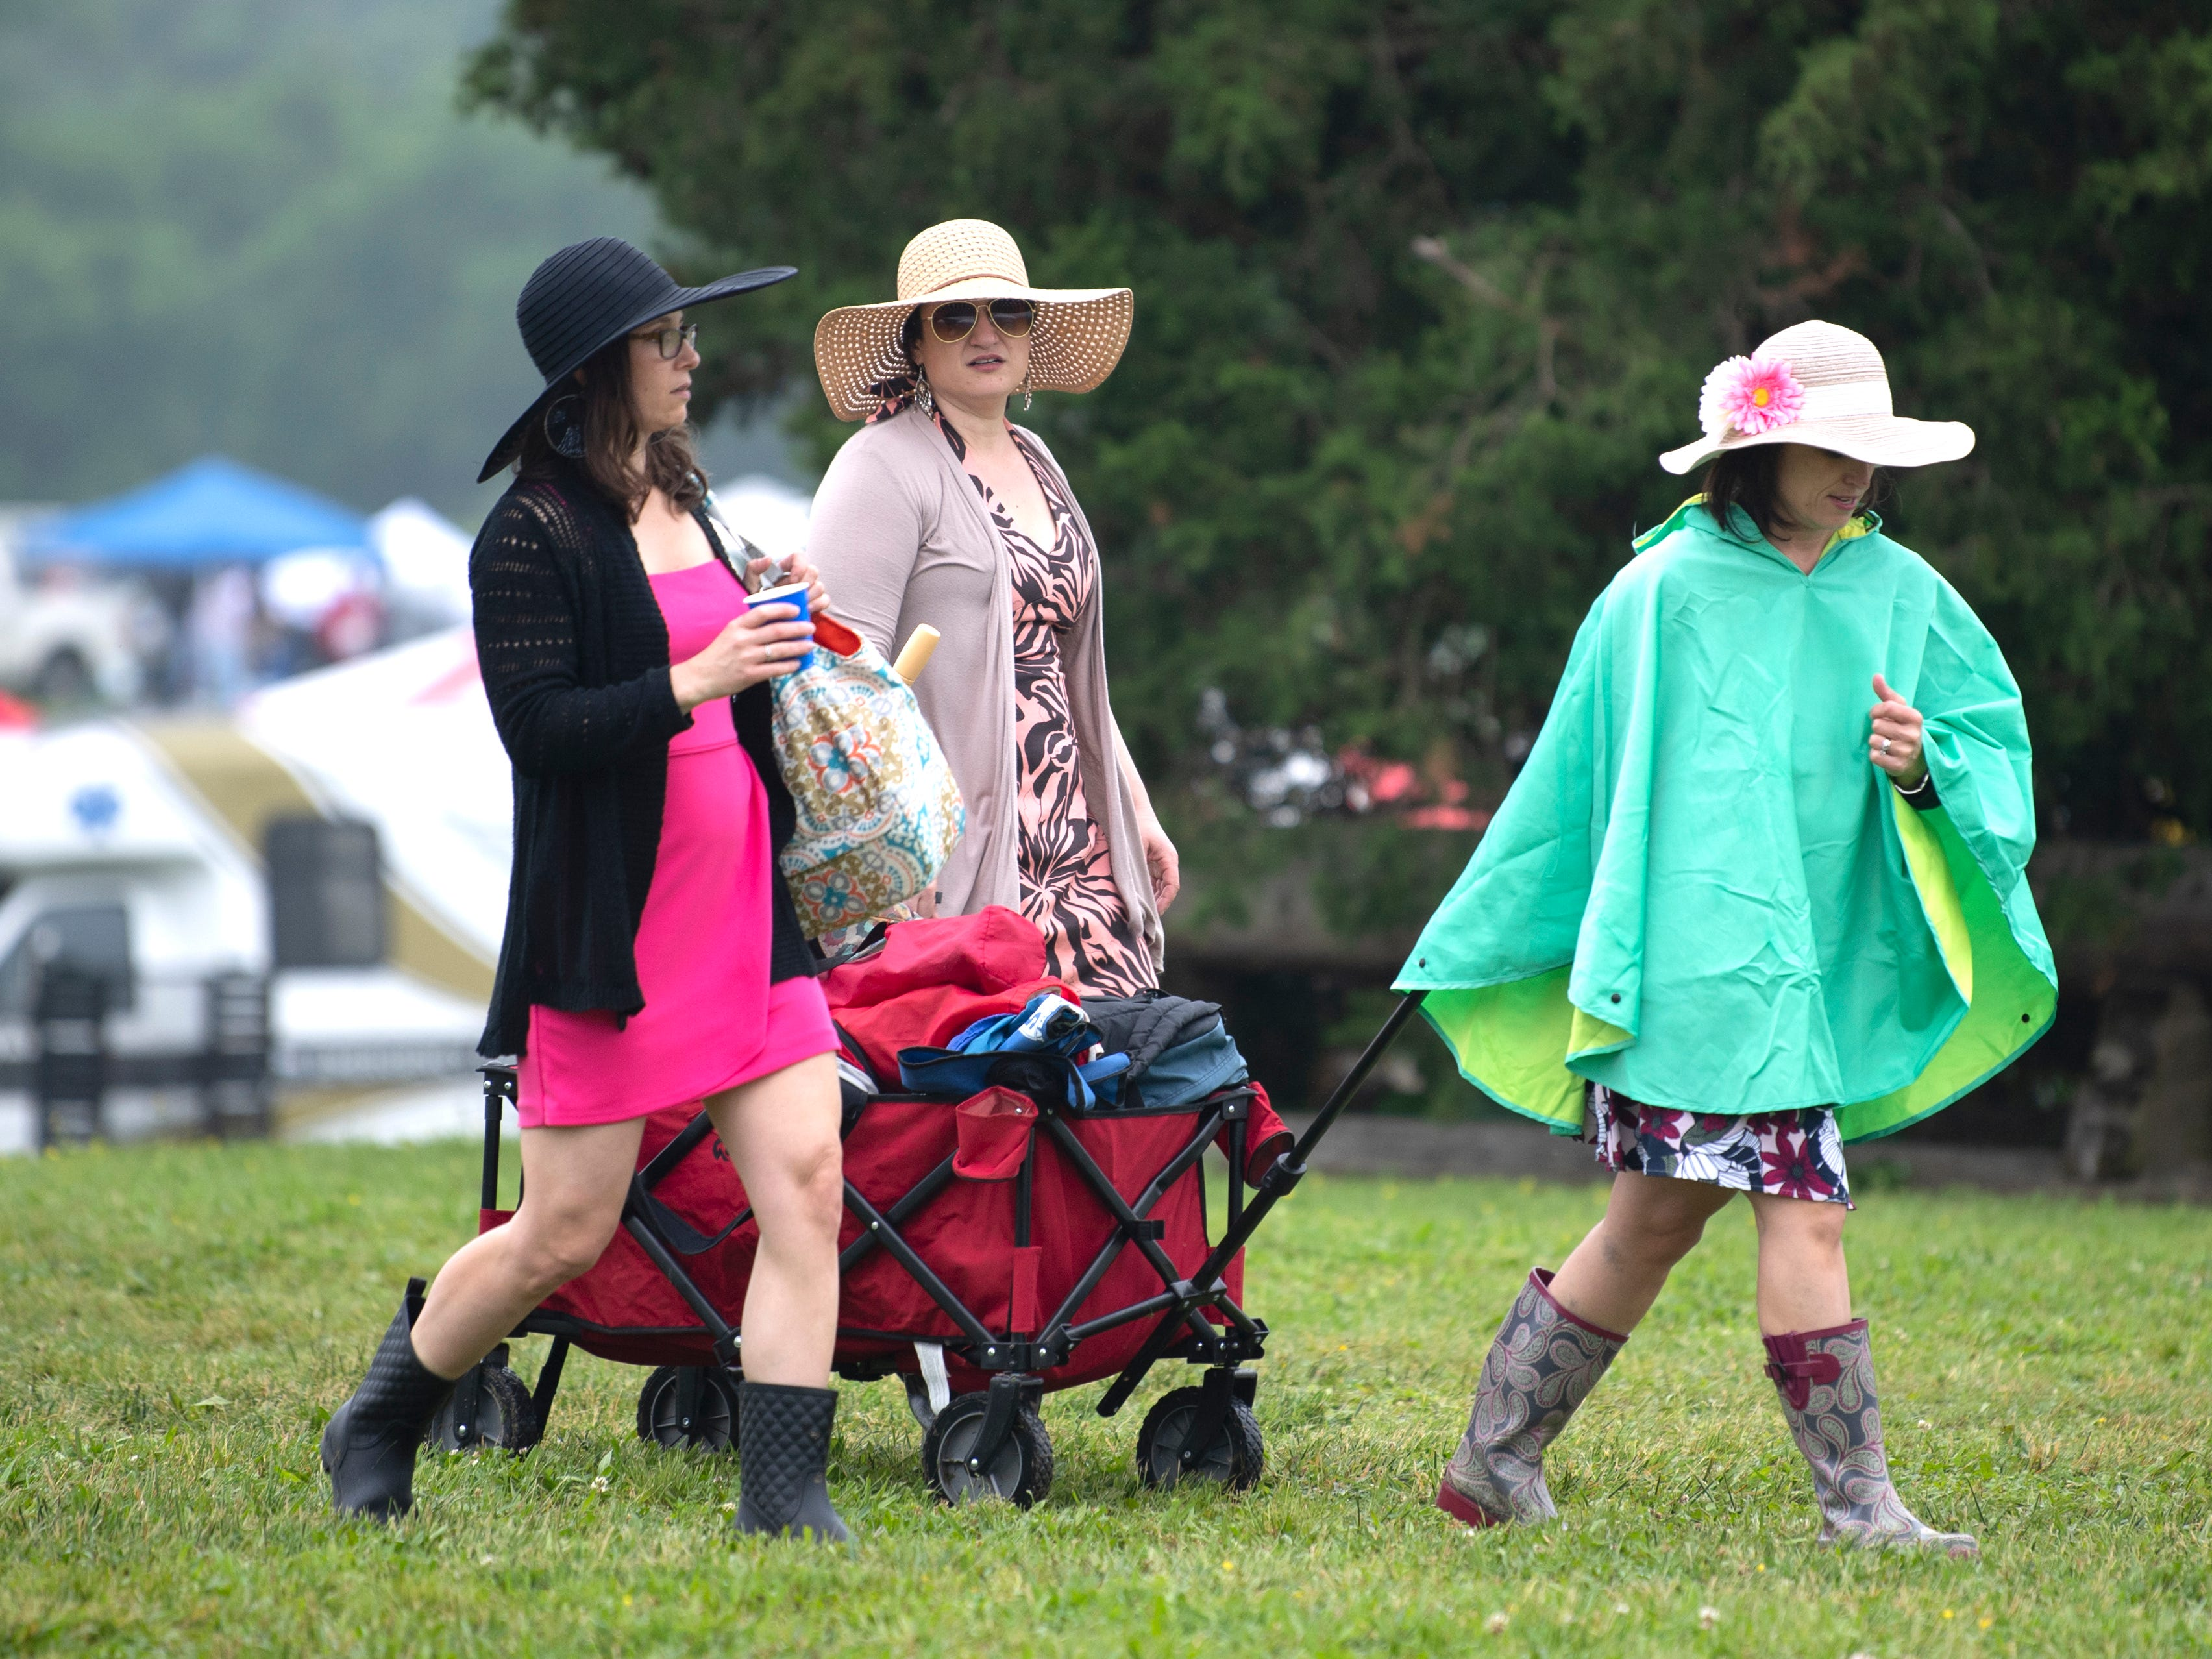 Horse racing fans carry belongings for tailgating at the 78th Iroquois Steeplechase at Percy Warner park in Nashville on Saturday, May, 11, 2019.